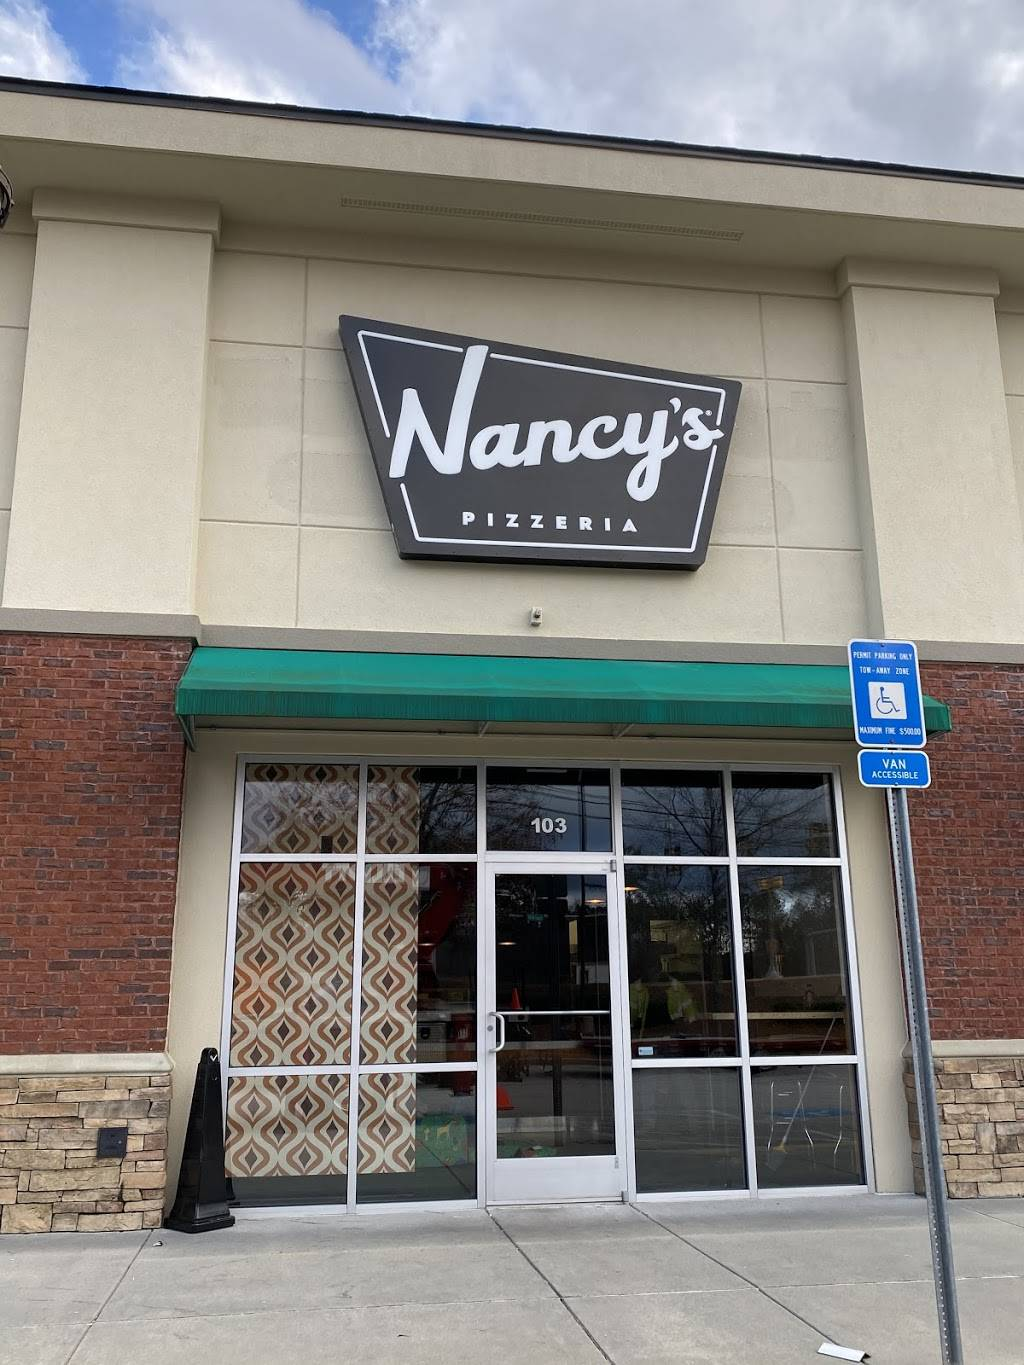 Nancys Pizzeria | meal delivery | 2987 Chapel Hill Rd Suite 103, Douglasville, GA 30135, USA | 6786537238 OR +1 678-653-7238